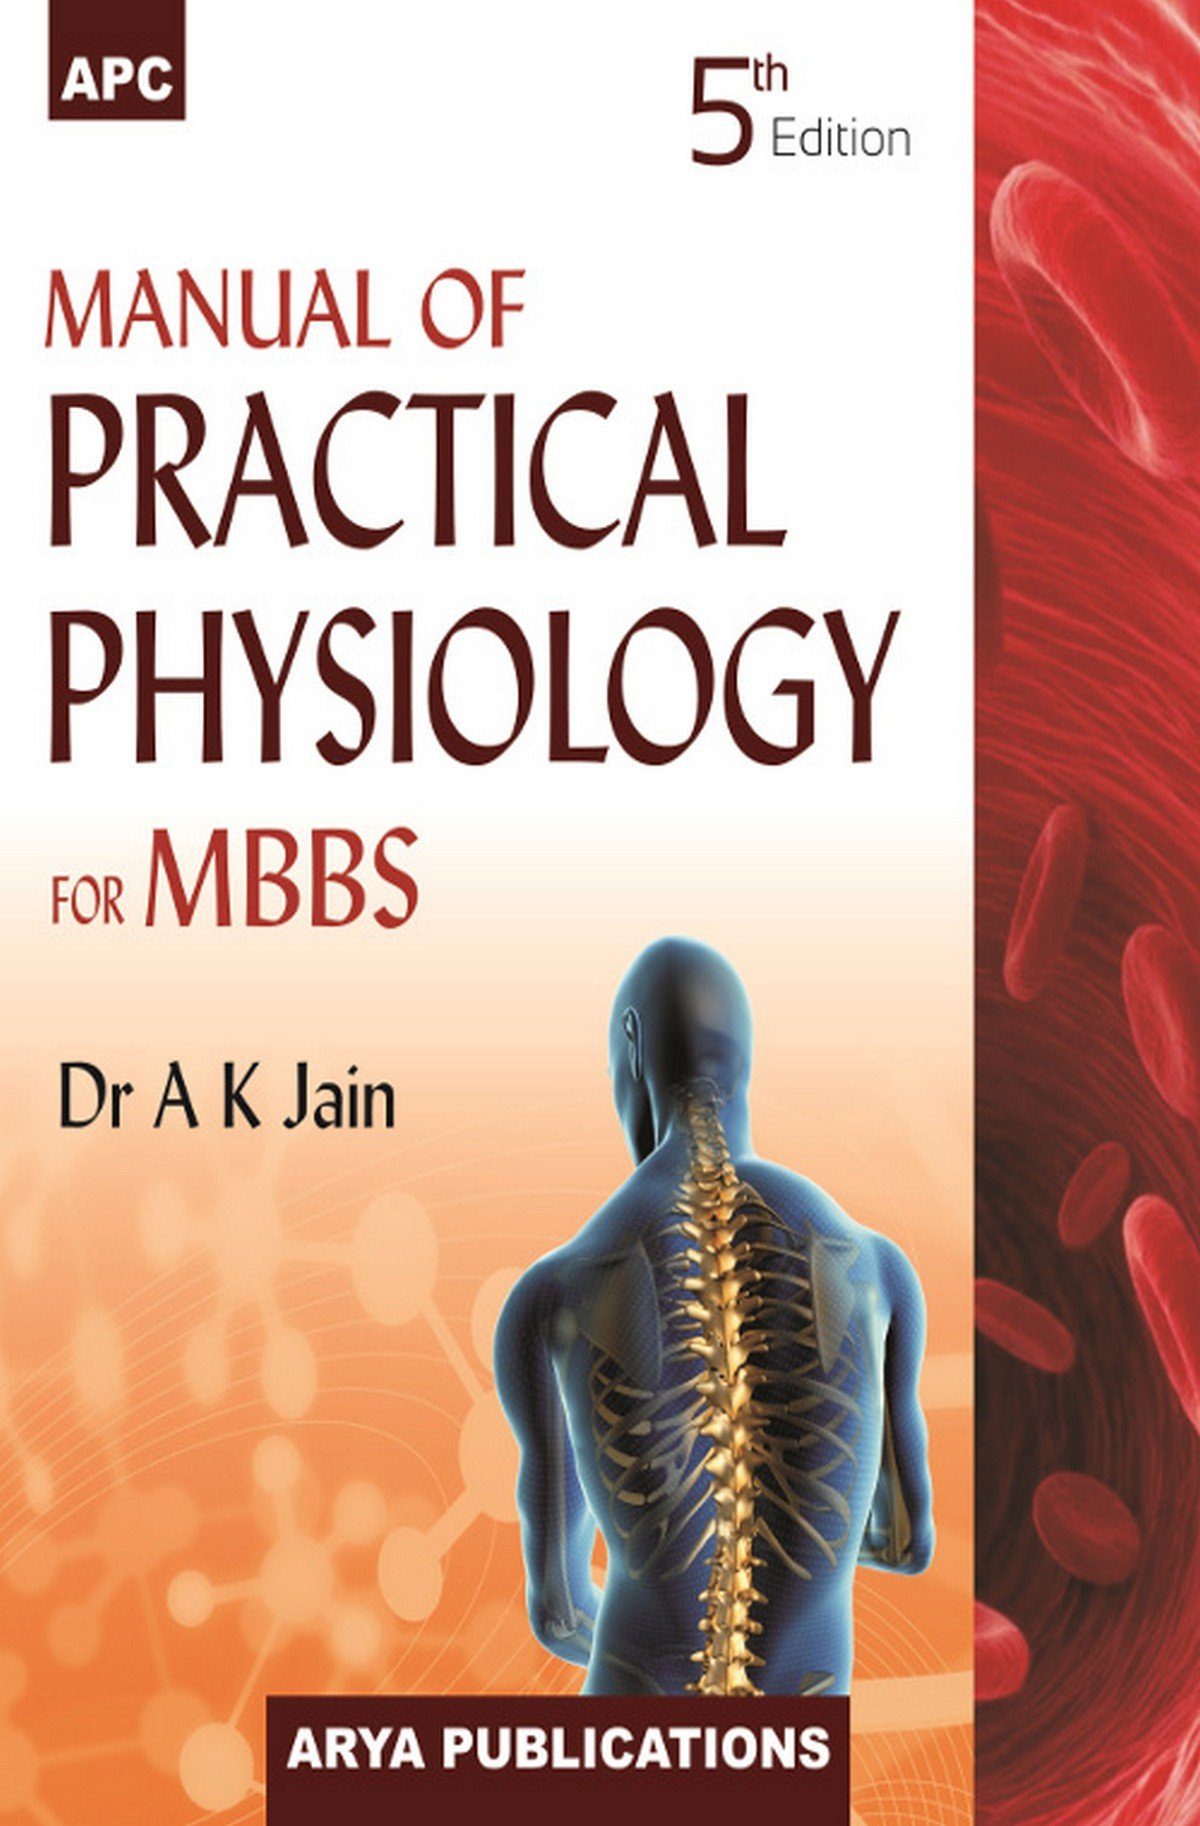 Manual of Practical Physiology for MBBS: A.K. Jain: 9788178557410:  Amazon.com: Books